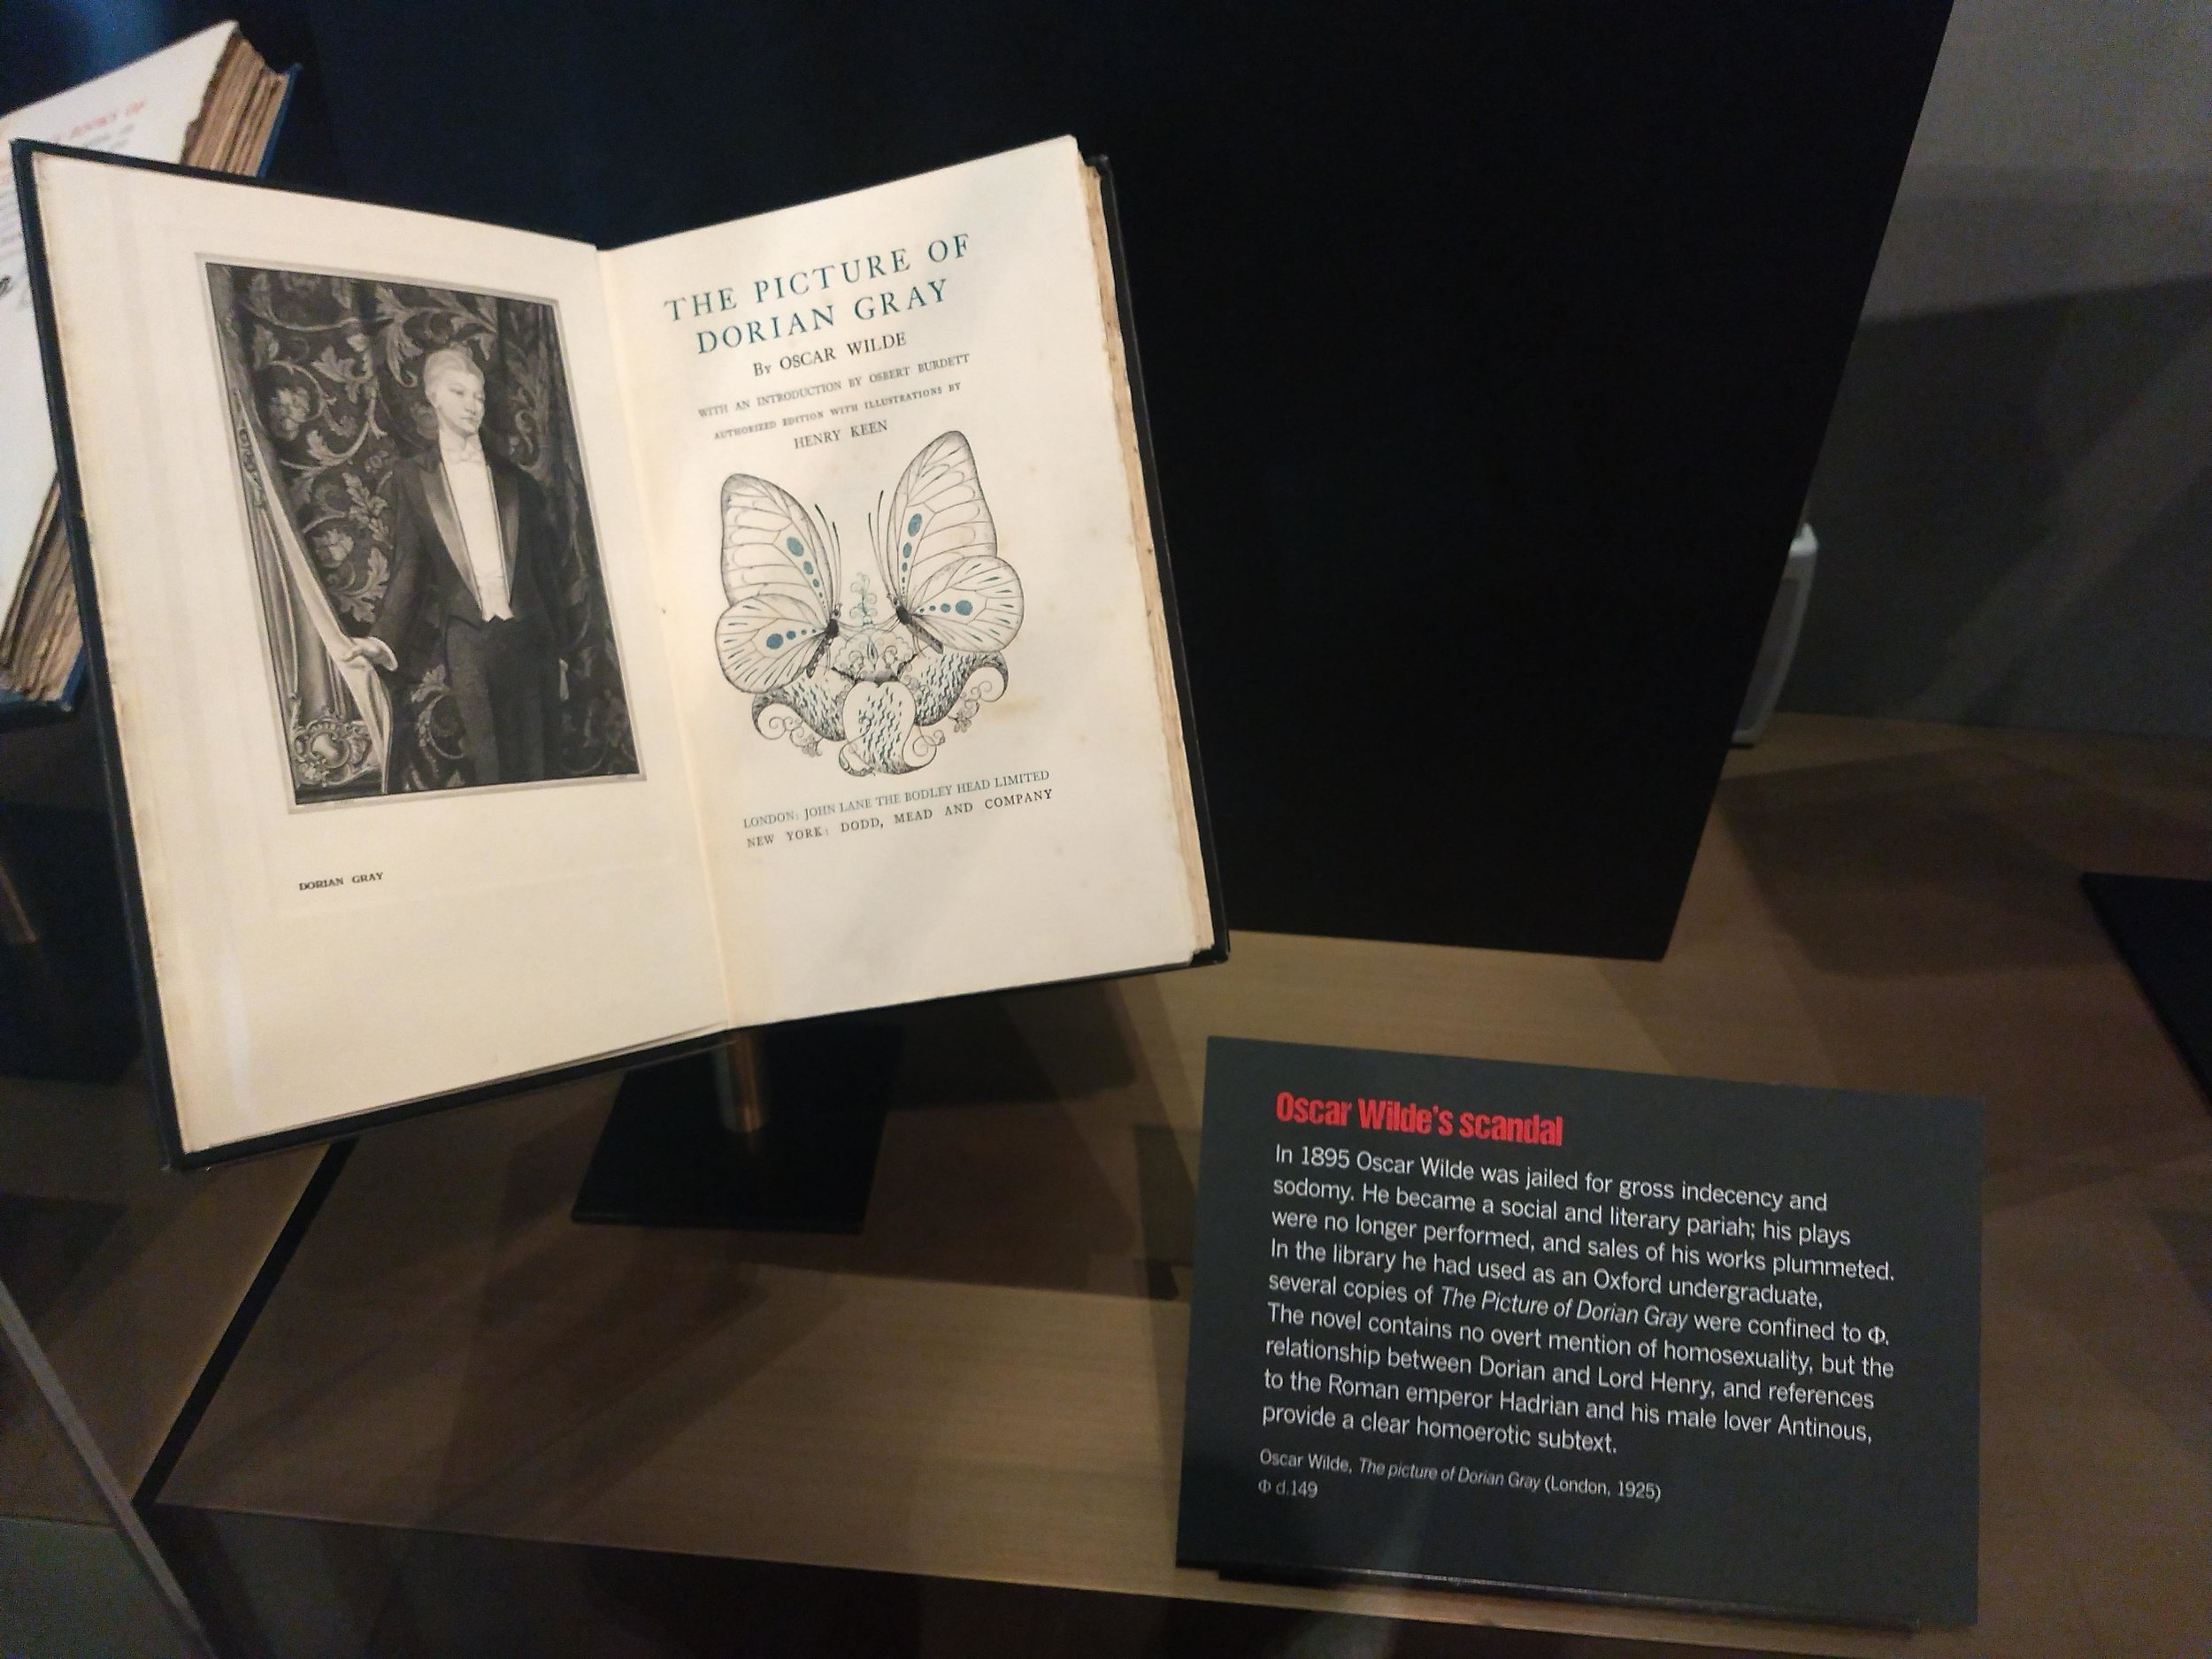 Story of Phi exhibit at Weston Library